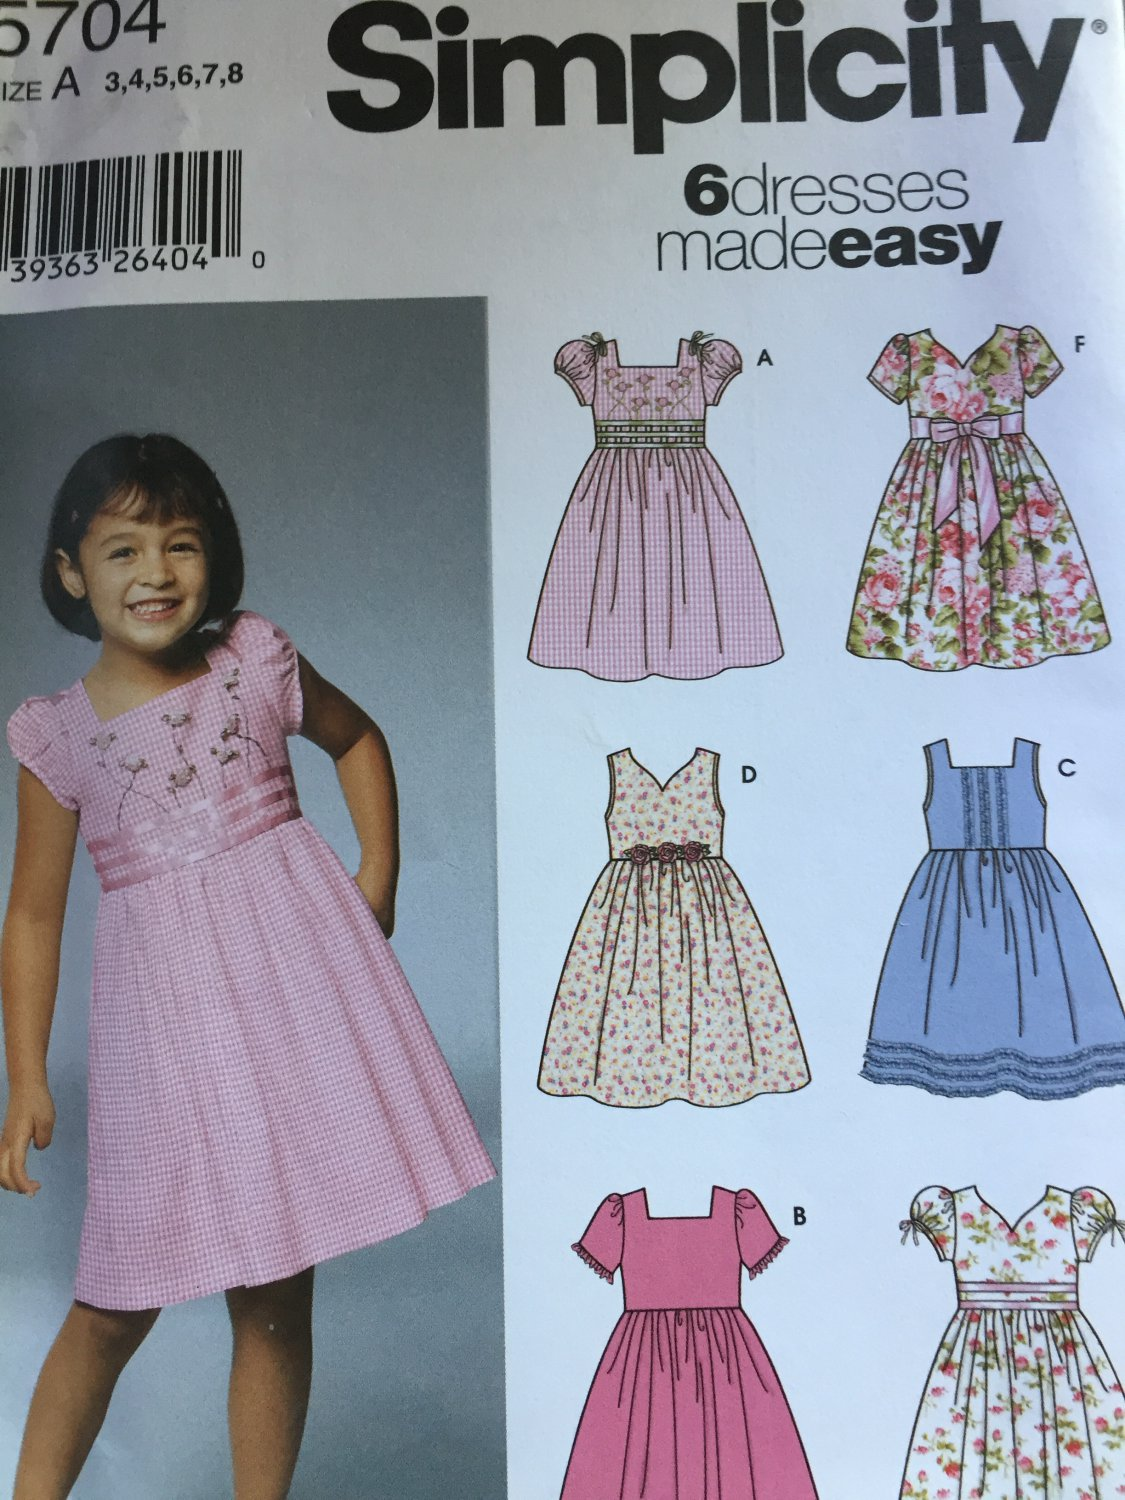 Simplicity 5704 Child's Dress with Bodice and Sleeve Variations Pattern Size 3-8 Party Dress